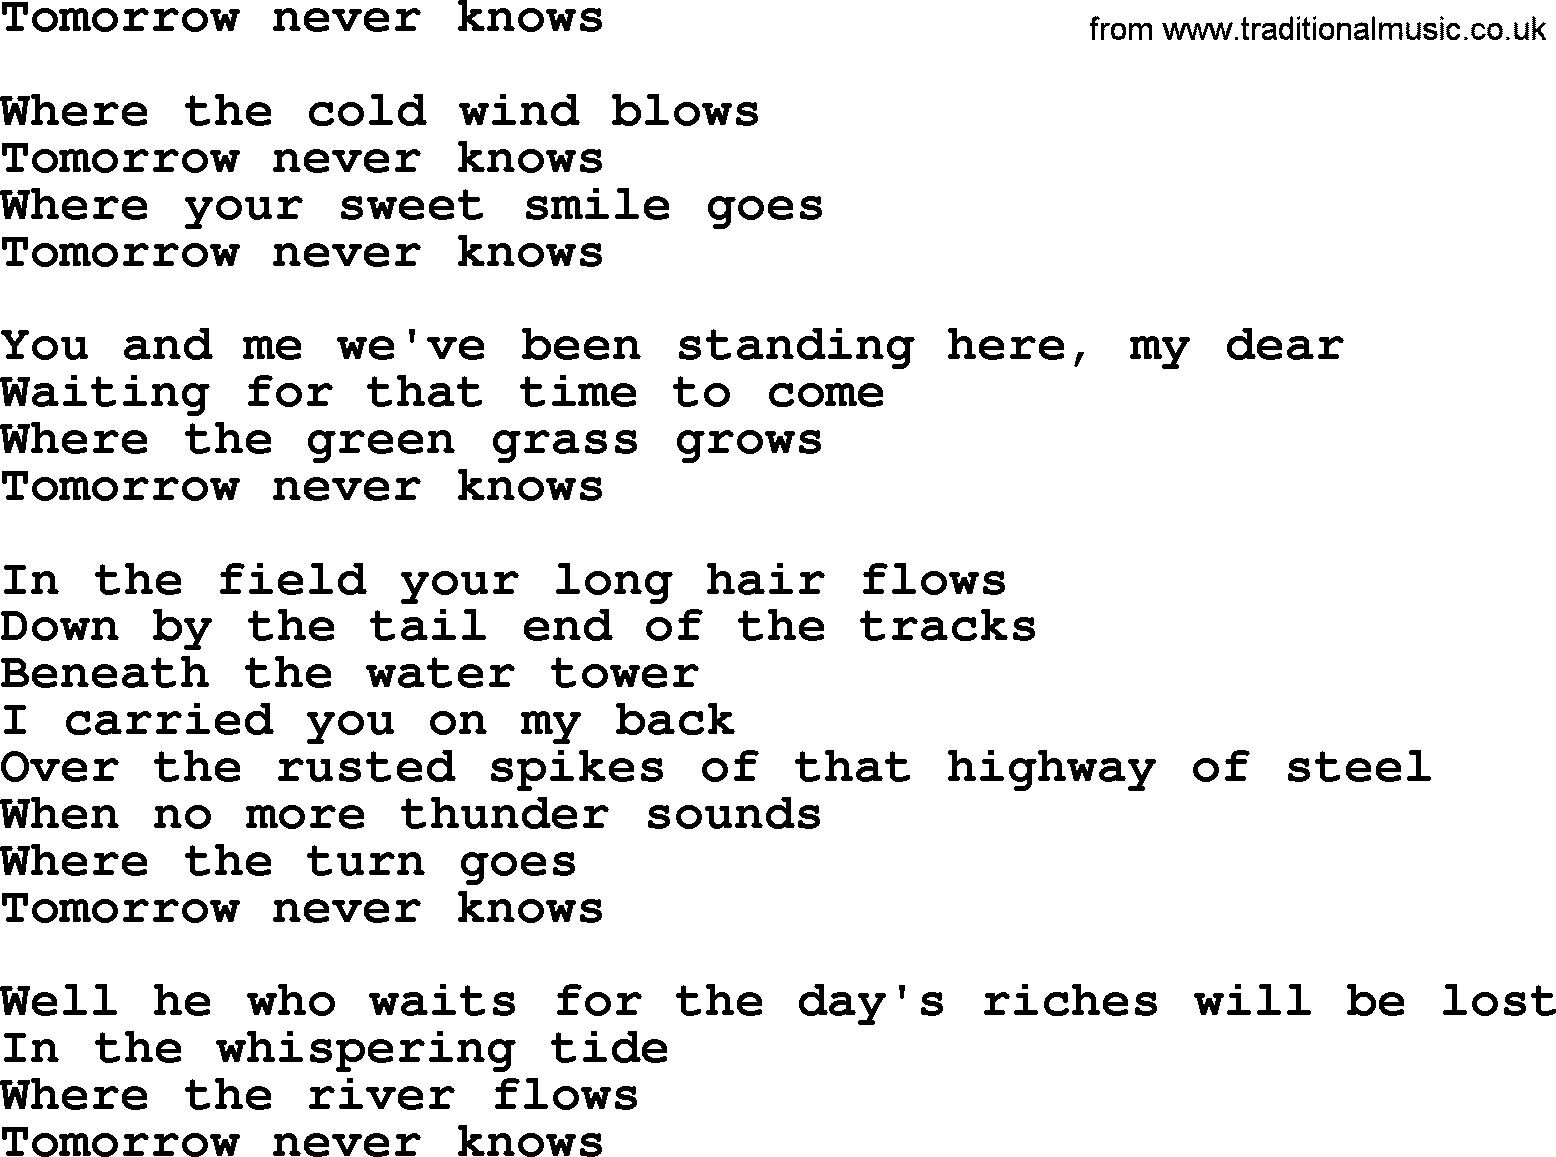 Bruce Springssong Tomorrow Never Knows Lyrics